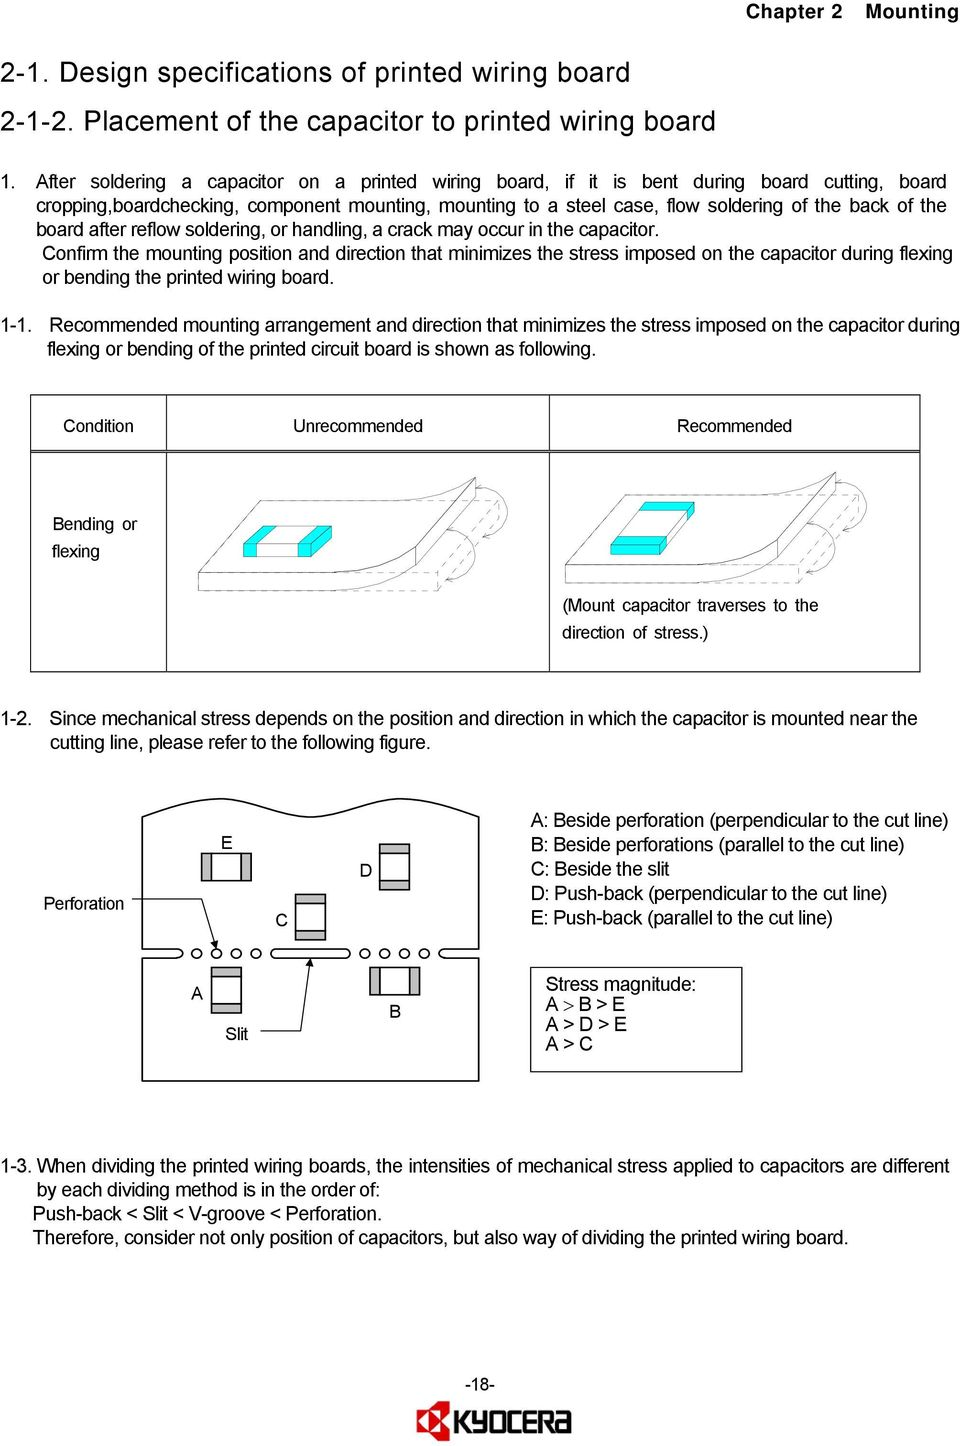 Safety Application Guide For Multilayer Ceramic Chip Capacitors Pdf Wiring In Series The Board After Reflow Soldering Or Handling A Crack May Occur Capacitor